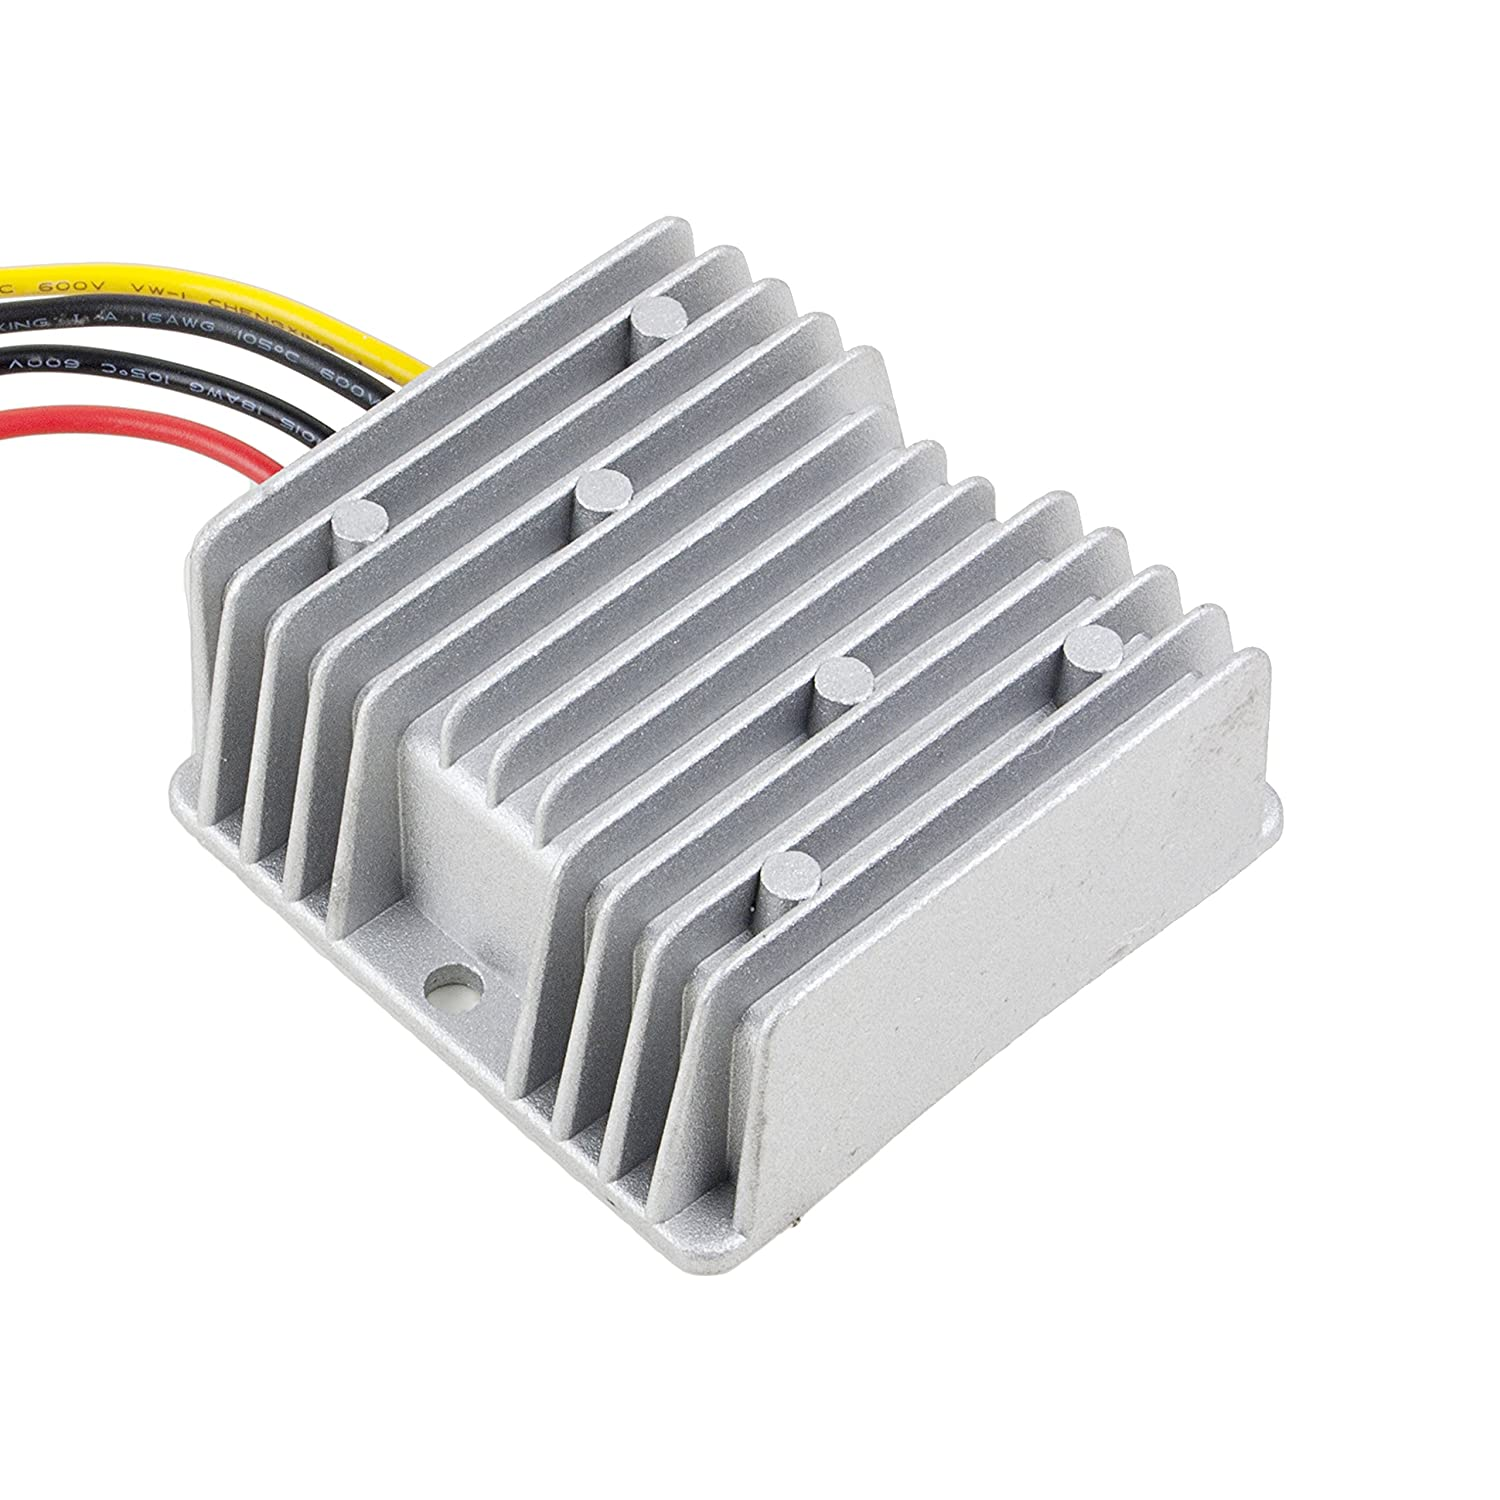 Uxcell Dc 48v Step Down To 12v 20a 240w Waterproof 36 Volt Fork Lift Battery Charger Wiring Diagram Car Power Supply Module Voltage Converter Regulator Transformer Home Audio Theater